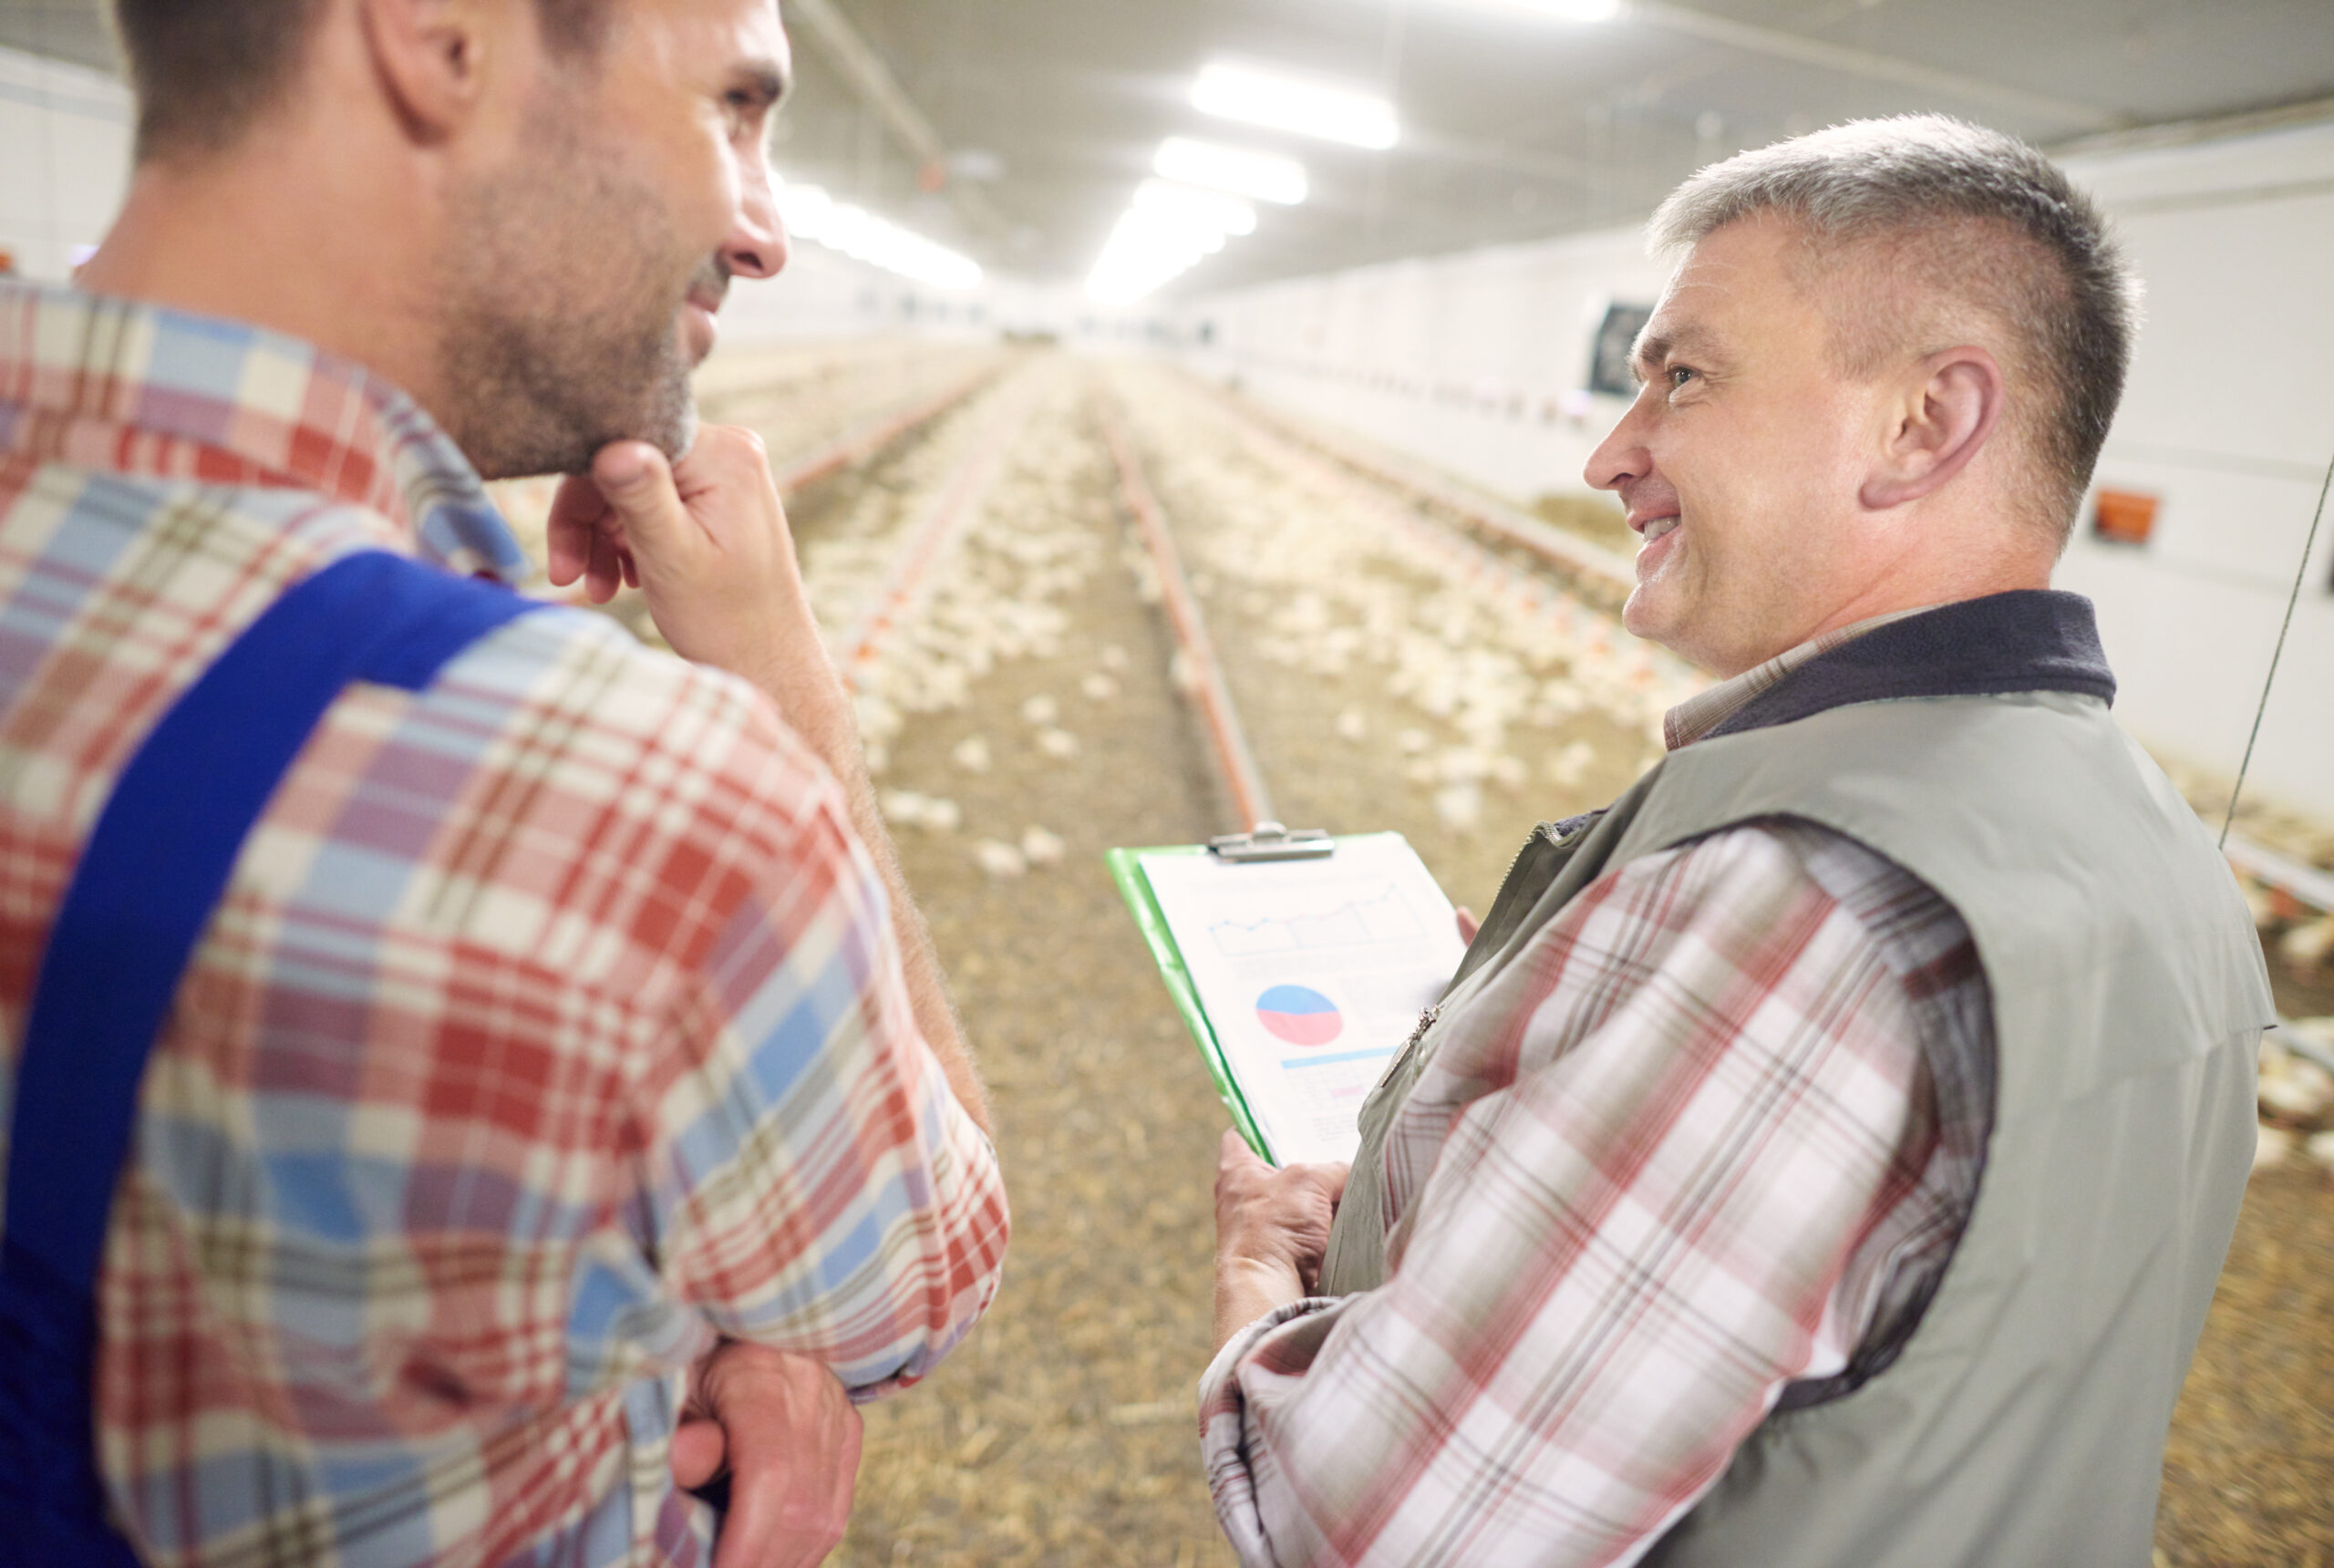 Two farmers talking about poultry business